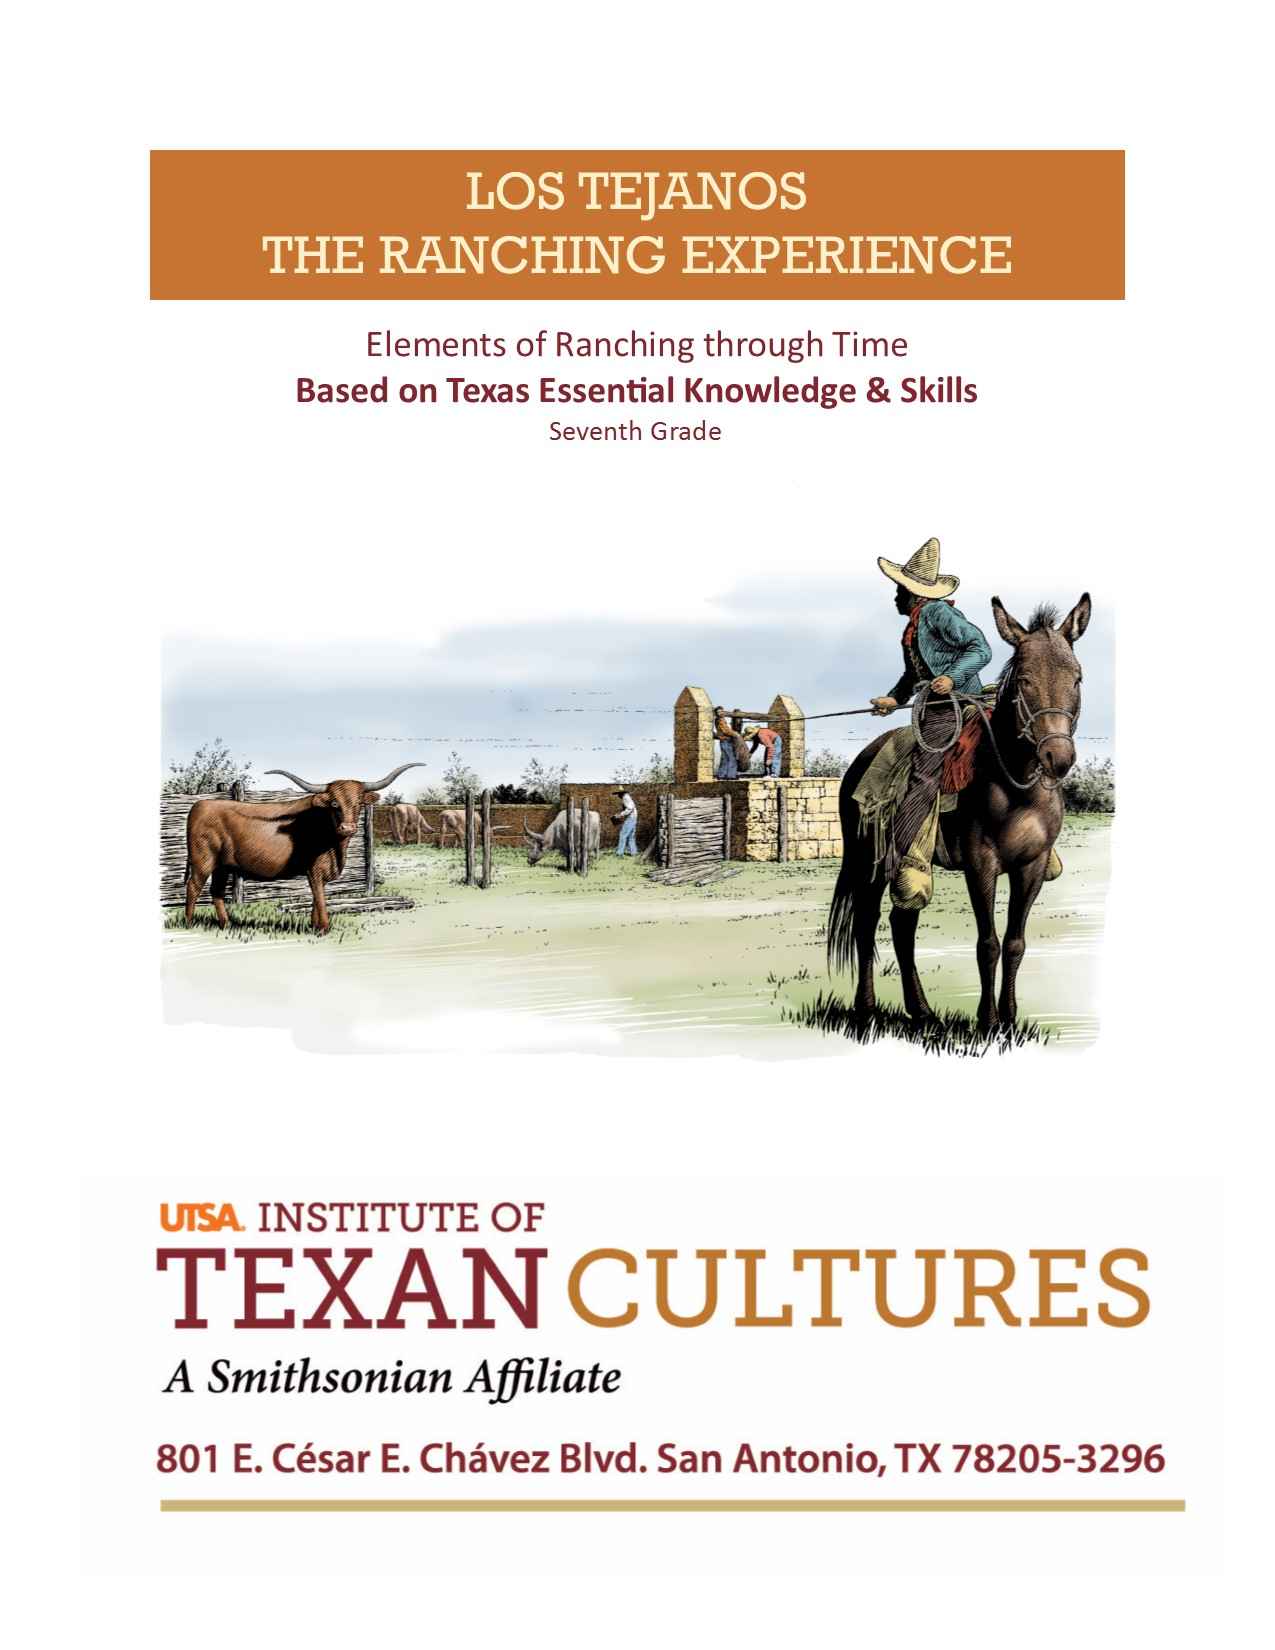 The Ranching Experience | UTSA Institute Of Texan Cultures